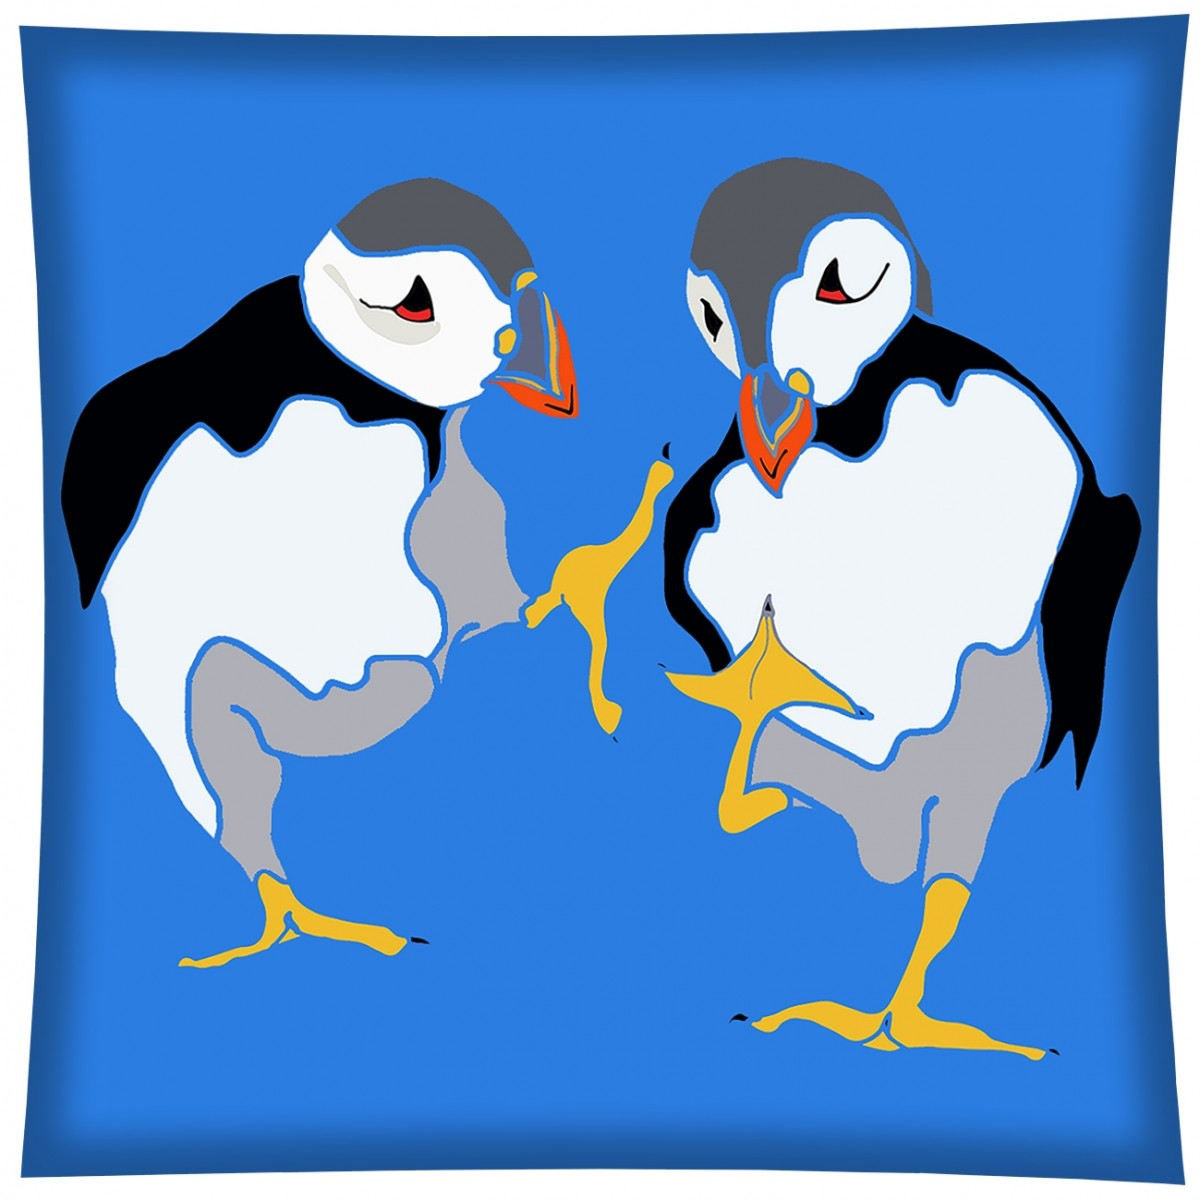 Dancing puffin clipart freeuse stock Dancing Puffins freeuse stock